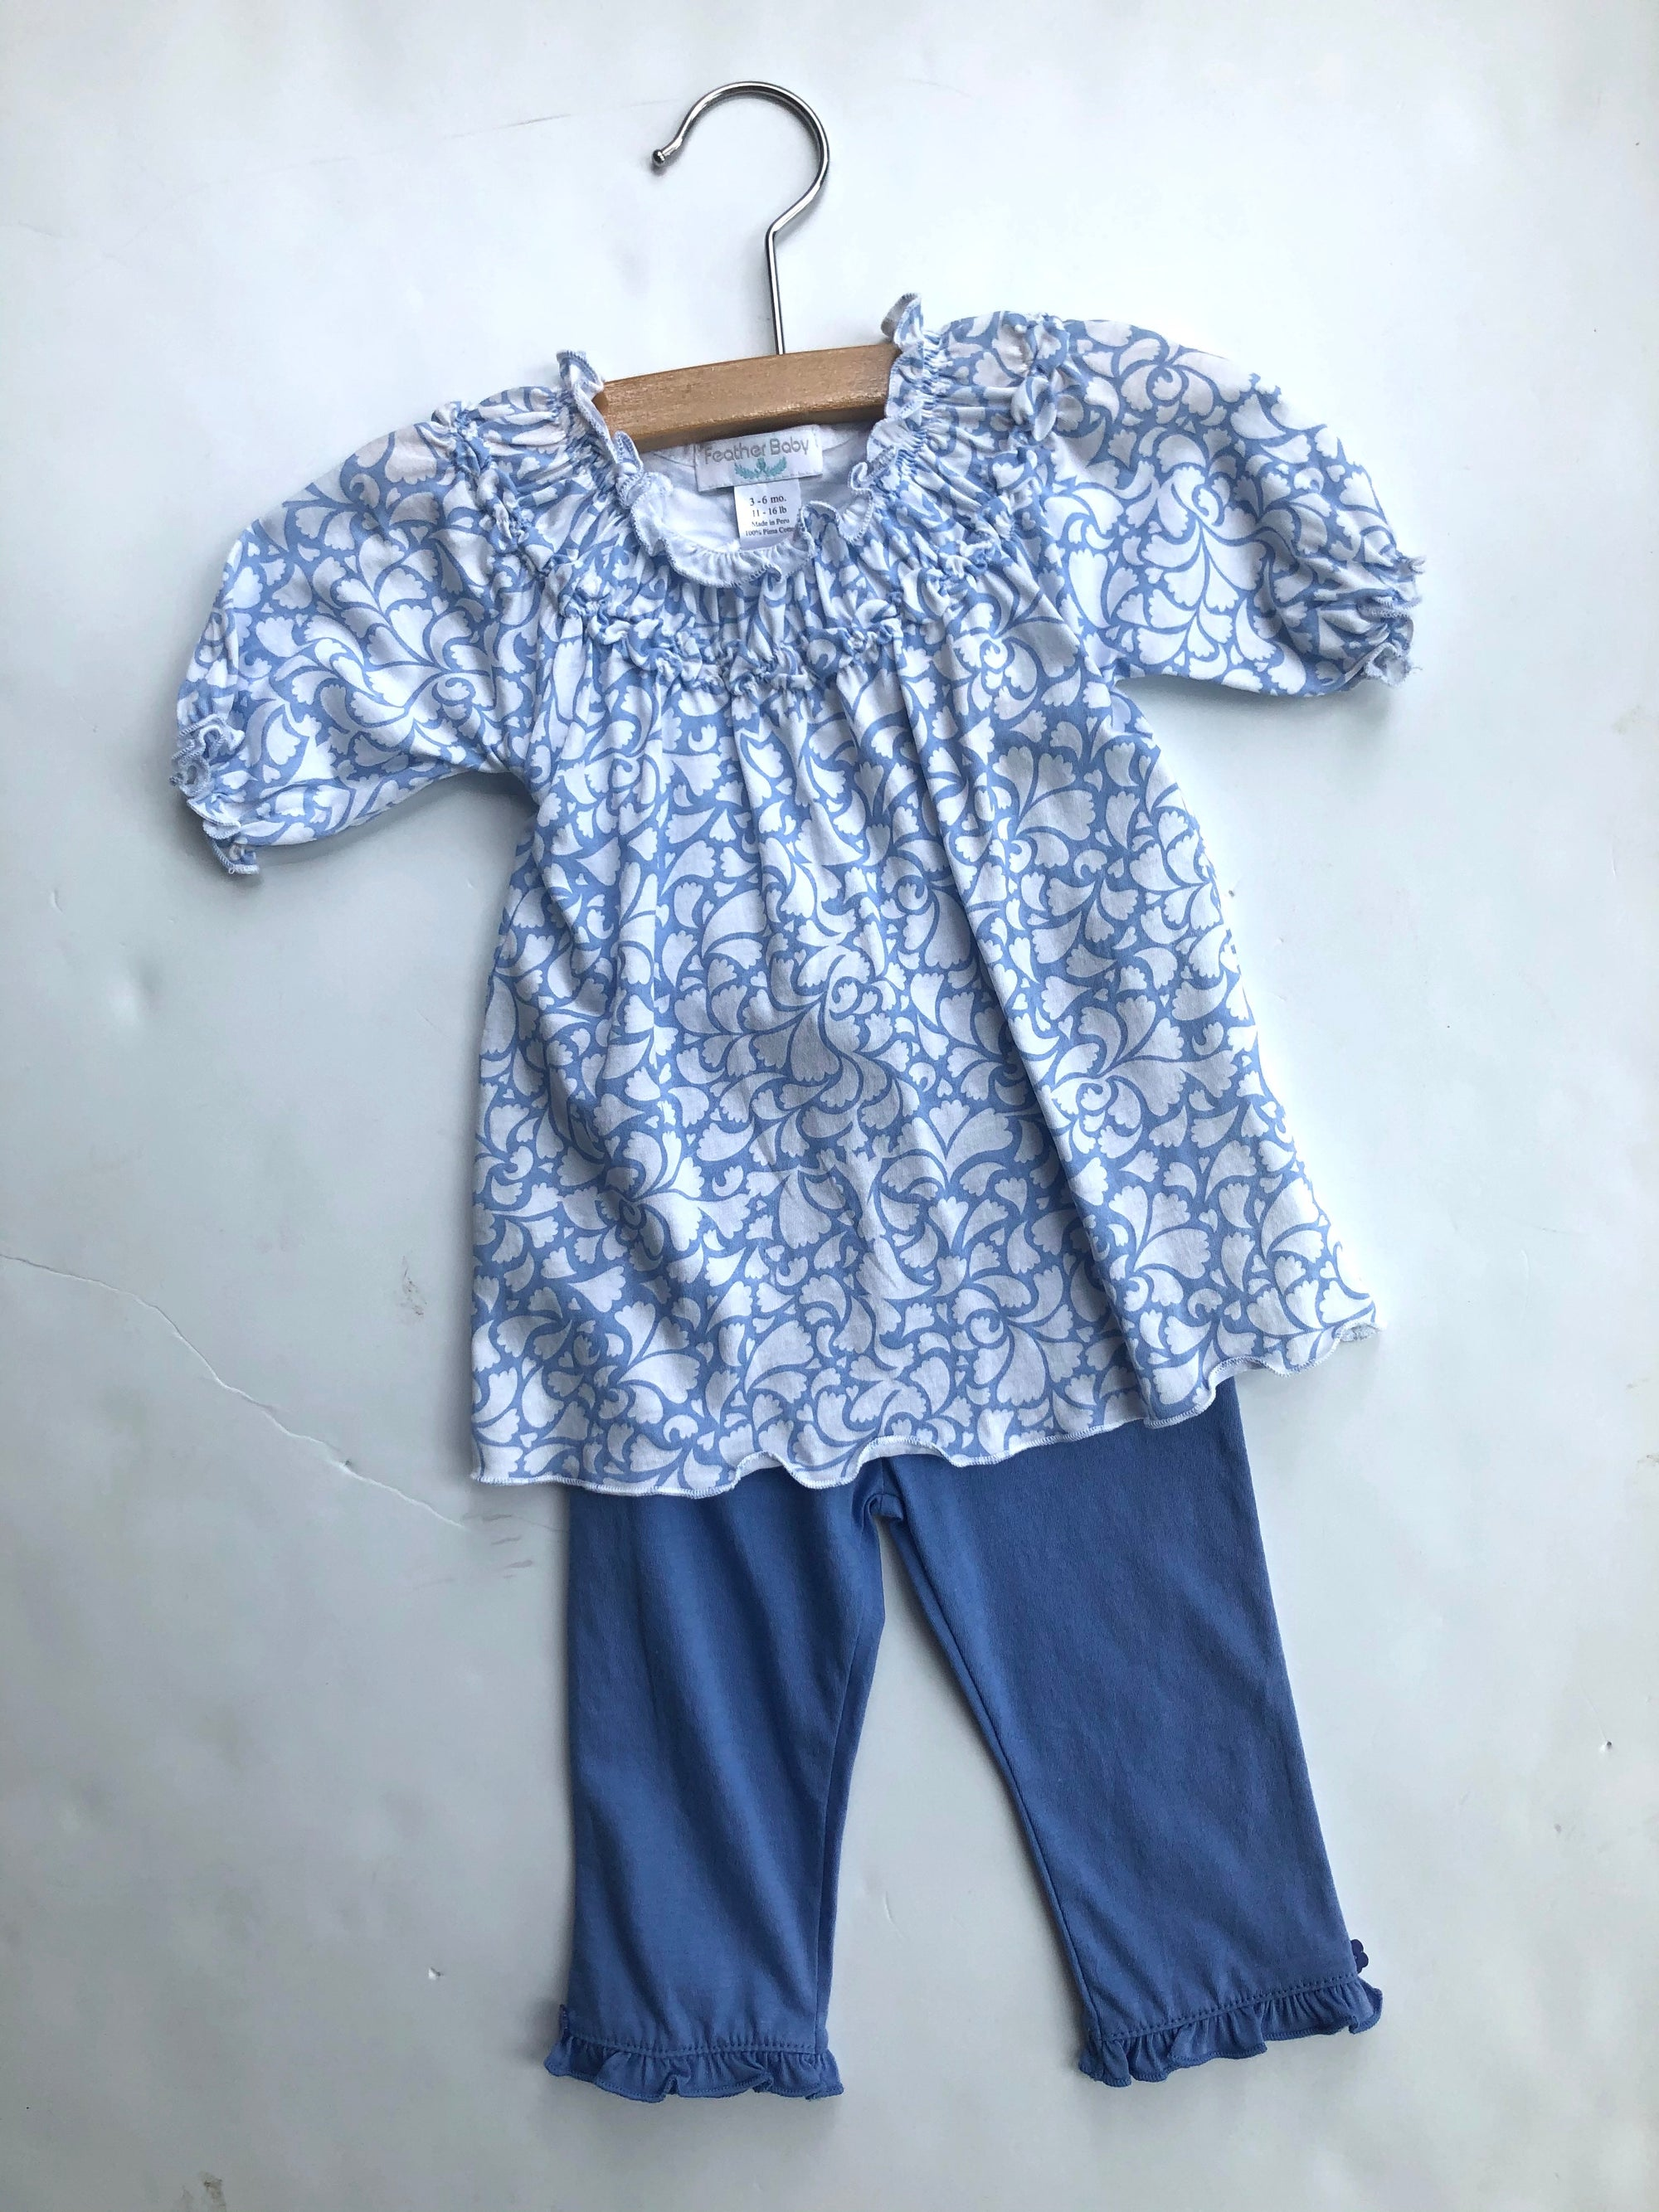 Feather Baby Ruched Tunic & Pant Set - Periwinkle Blue on White